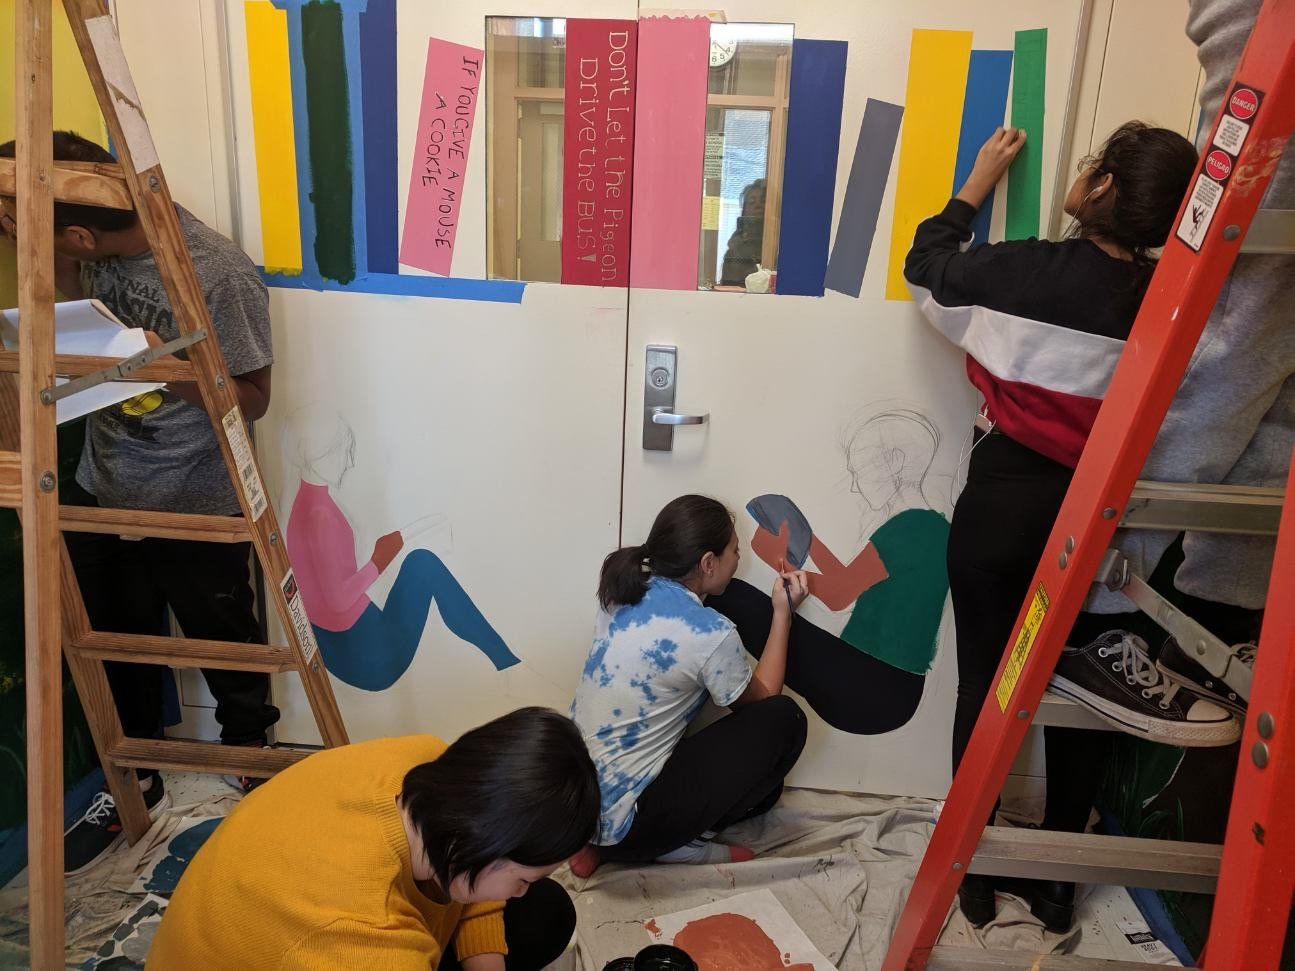 West Hempstead High School art students constructed a new mural in the entryway of the Chestnut Street School.